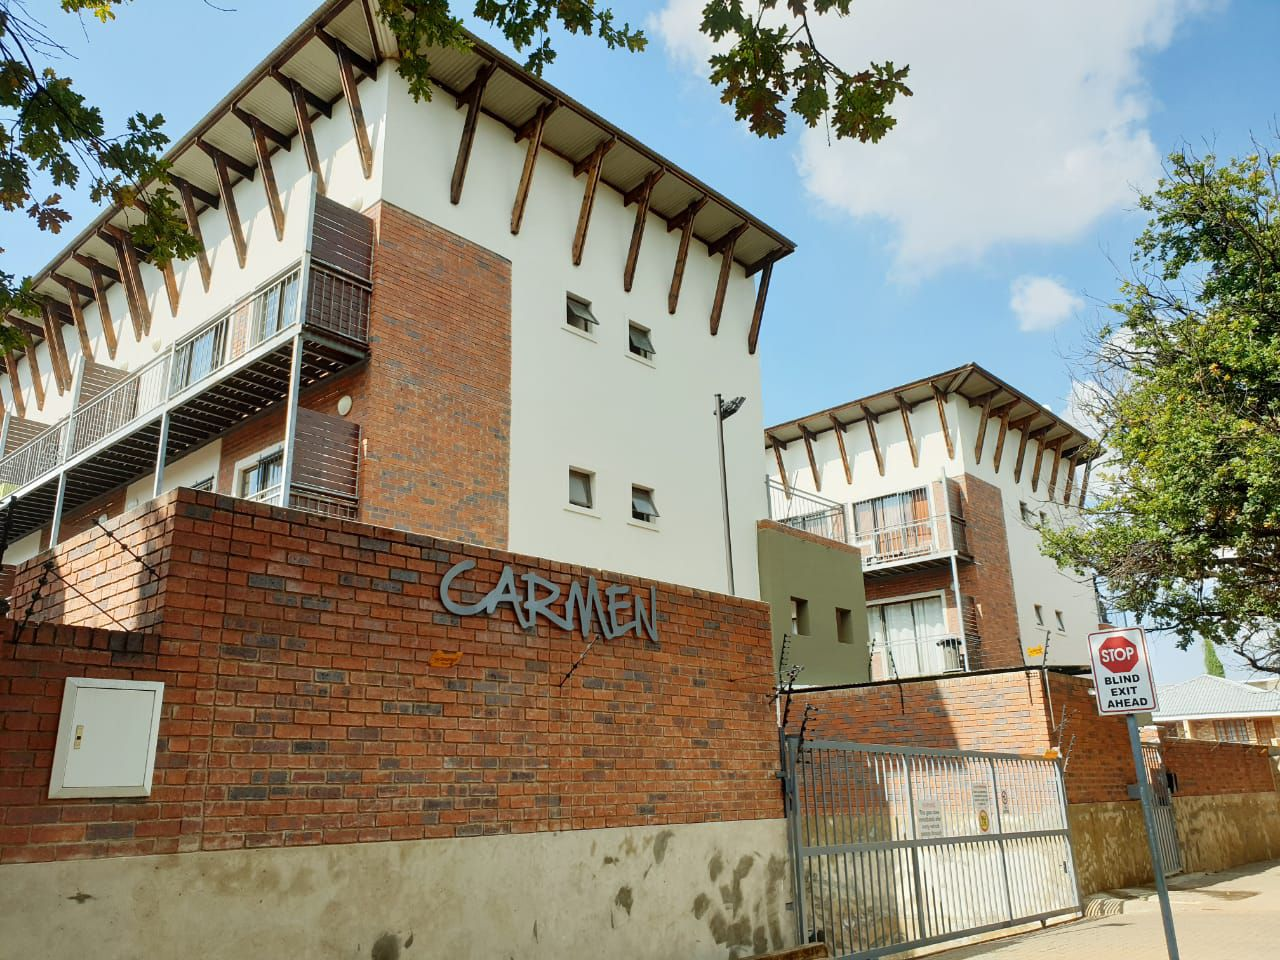 Apartment in Bult - WhatsApp Image 2019-04-29 at 11.25.51 (1).jpeg